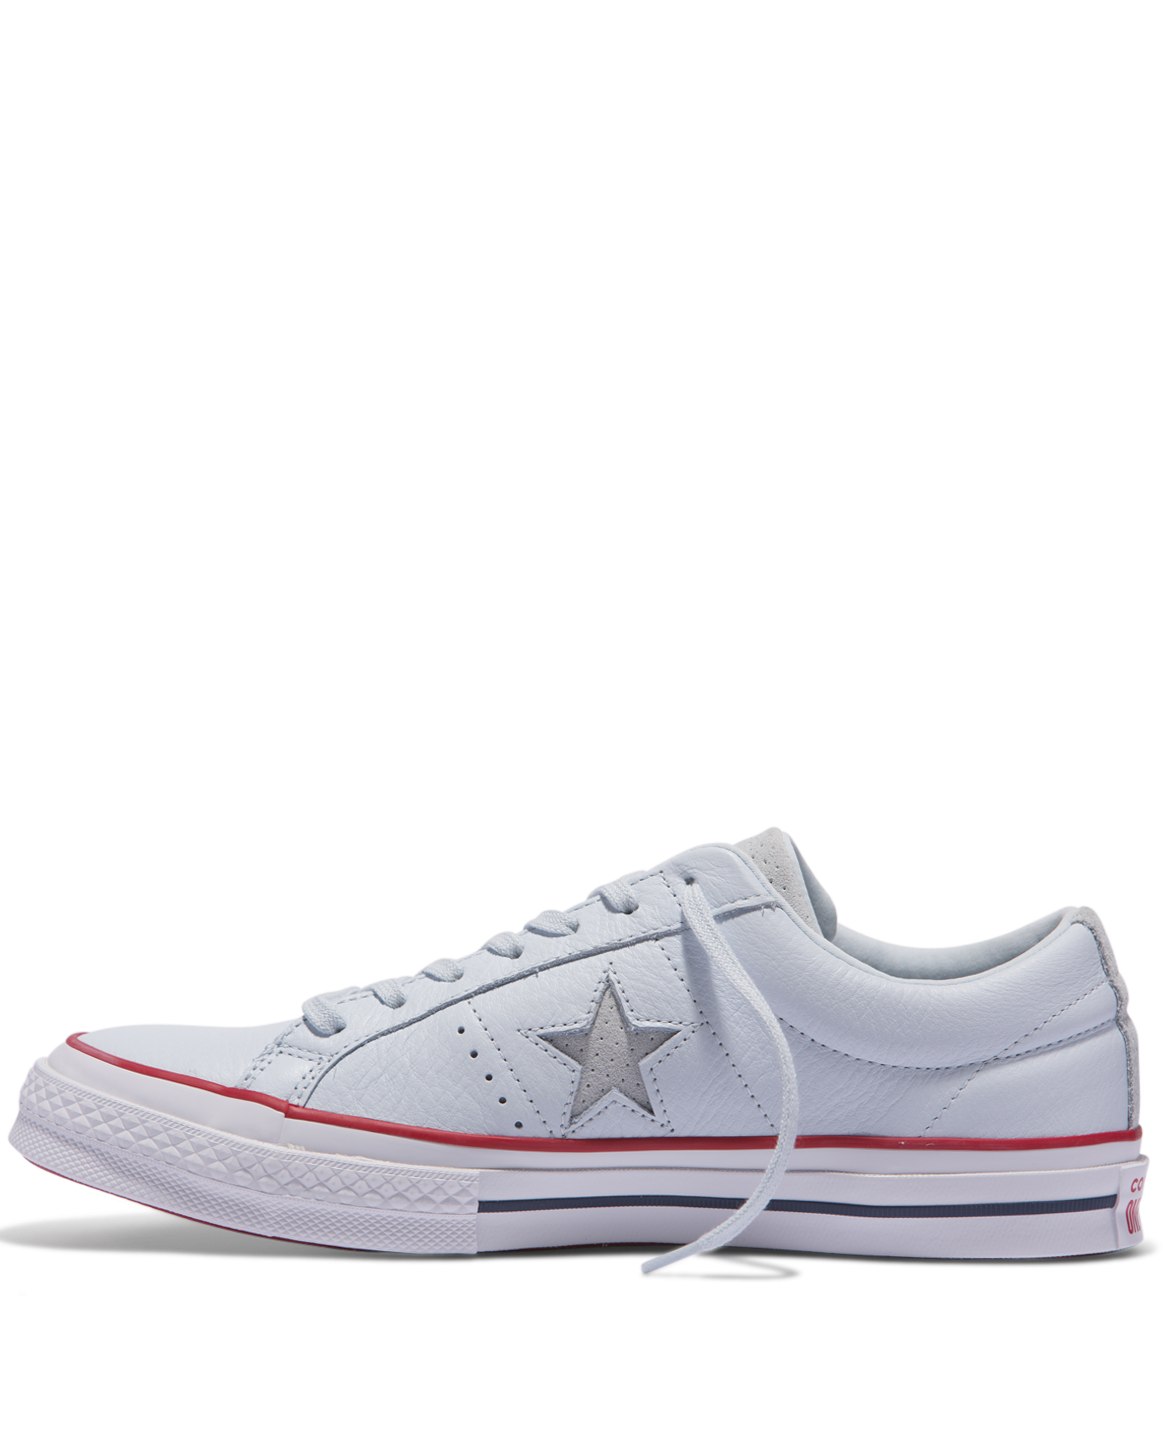 converse chuck taylors, White One Star Blue Star Laces Low